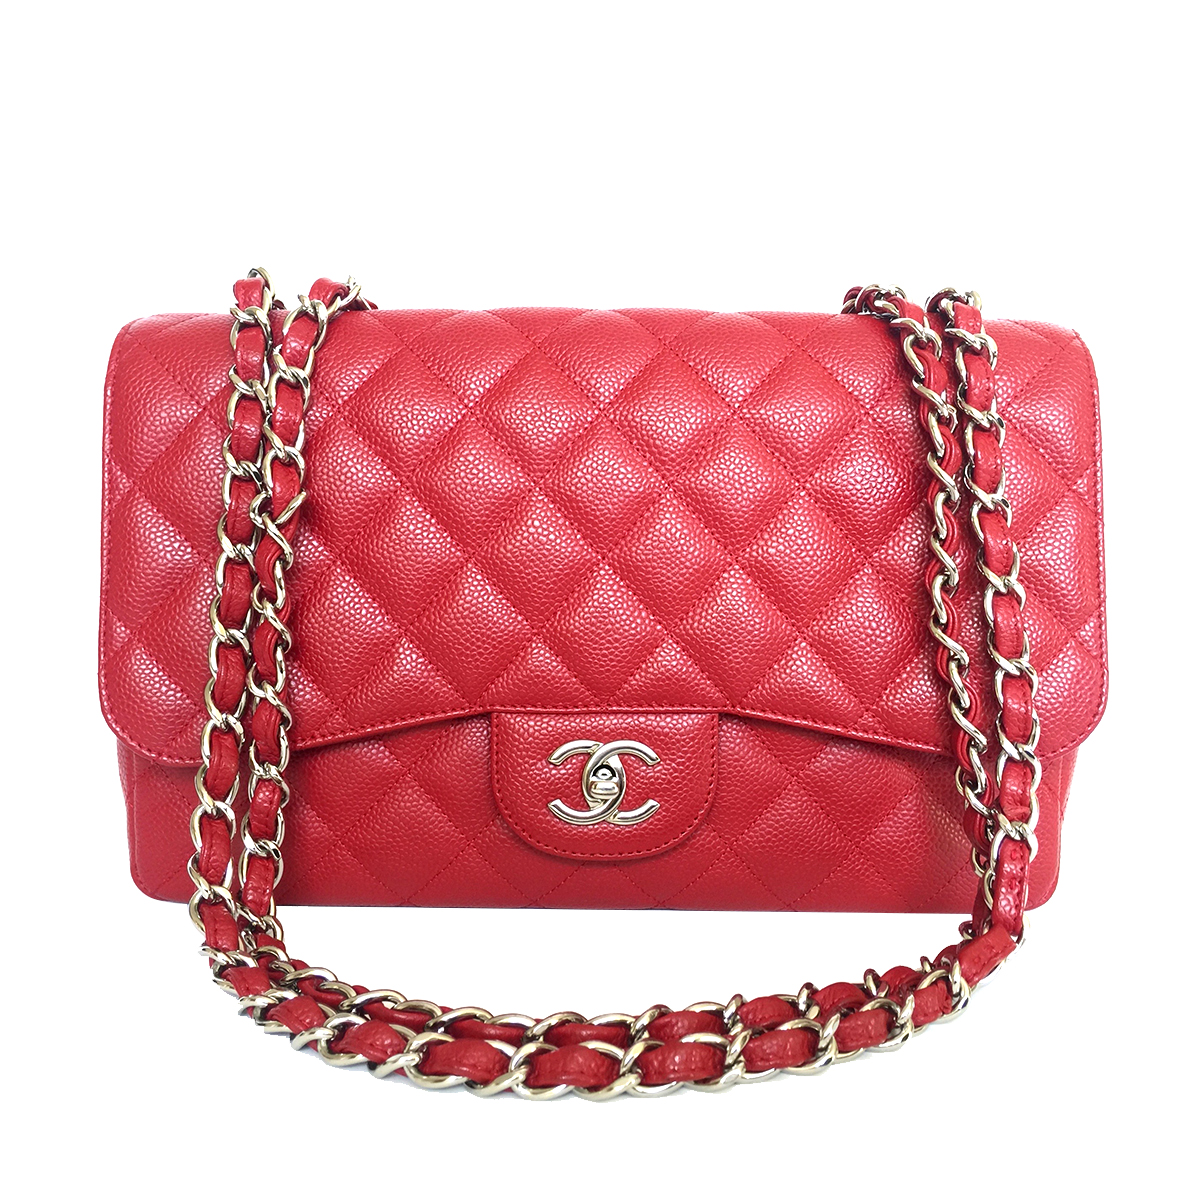 CHANEL Classic Jumbo Single Flap Red Caviar with Silver Hardware 2009